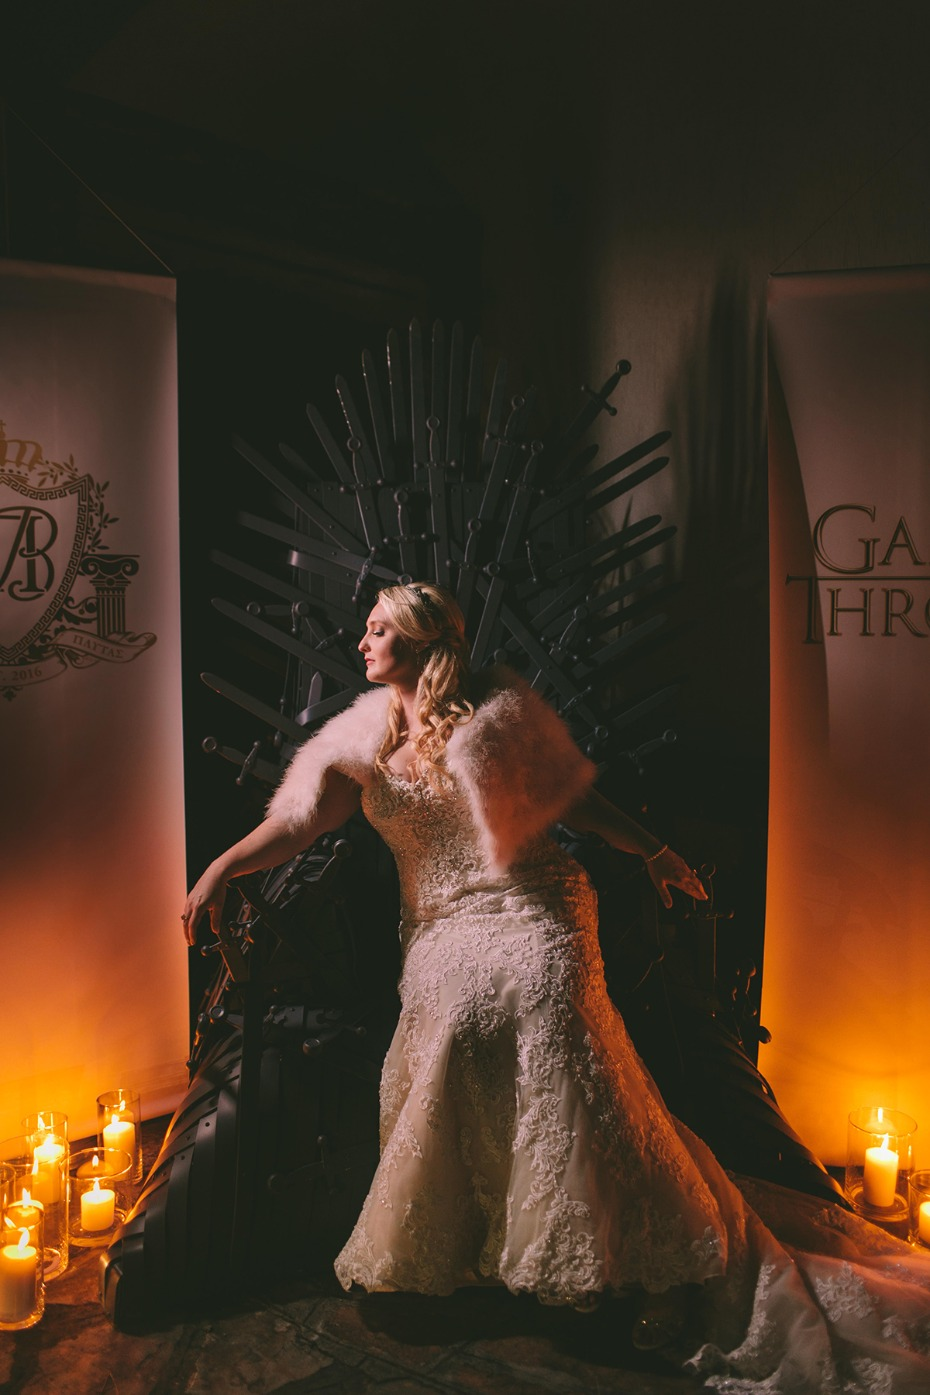 Game of Thrones photo booth